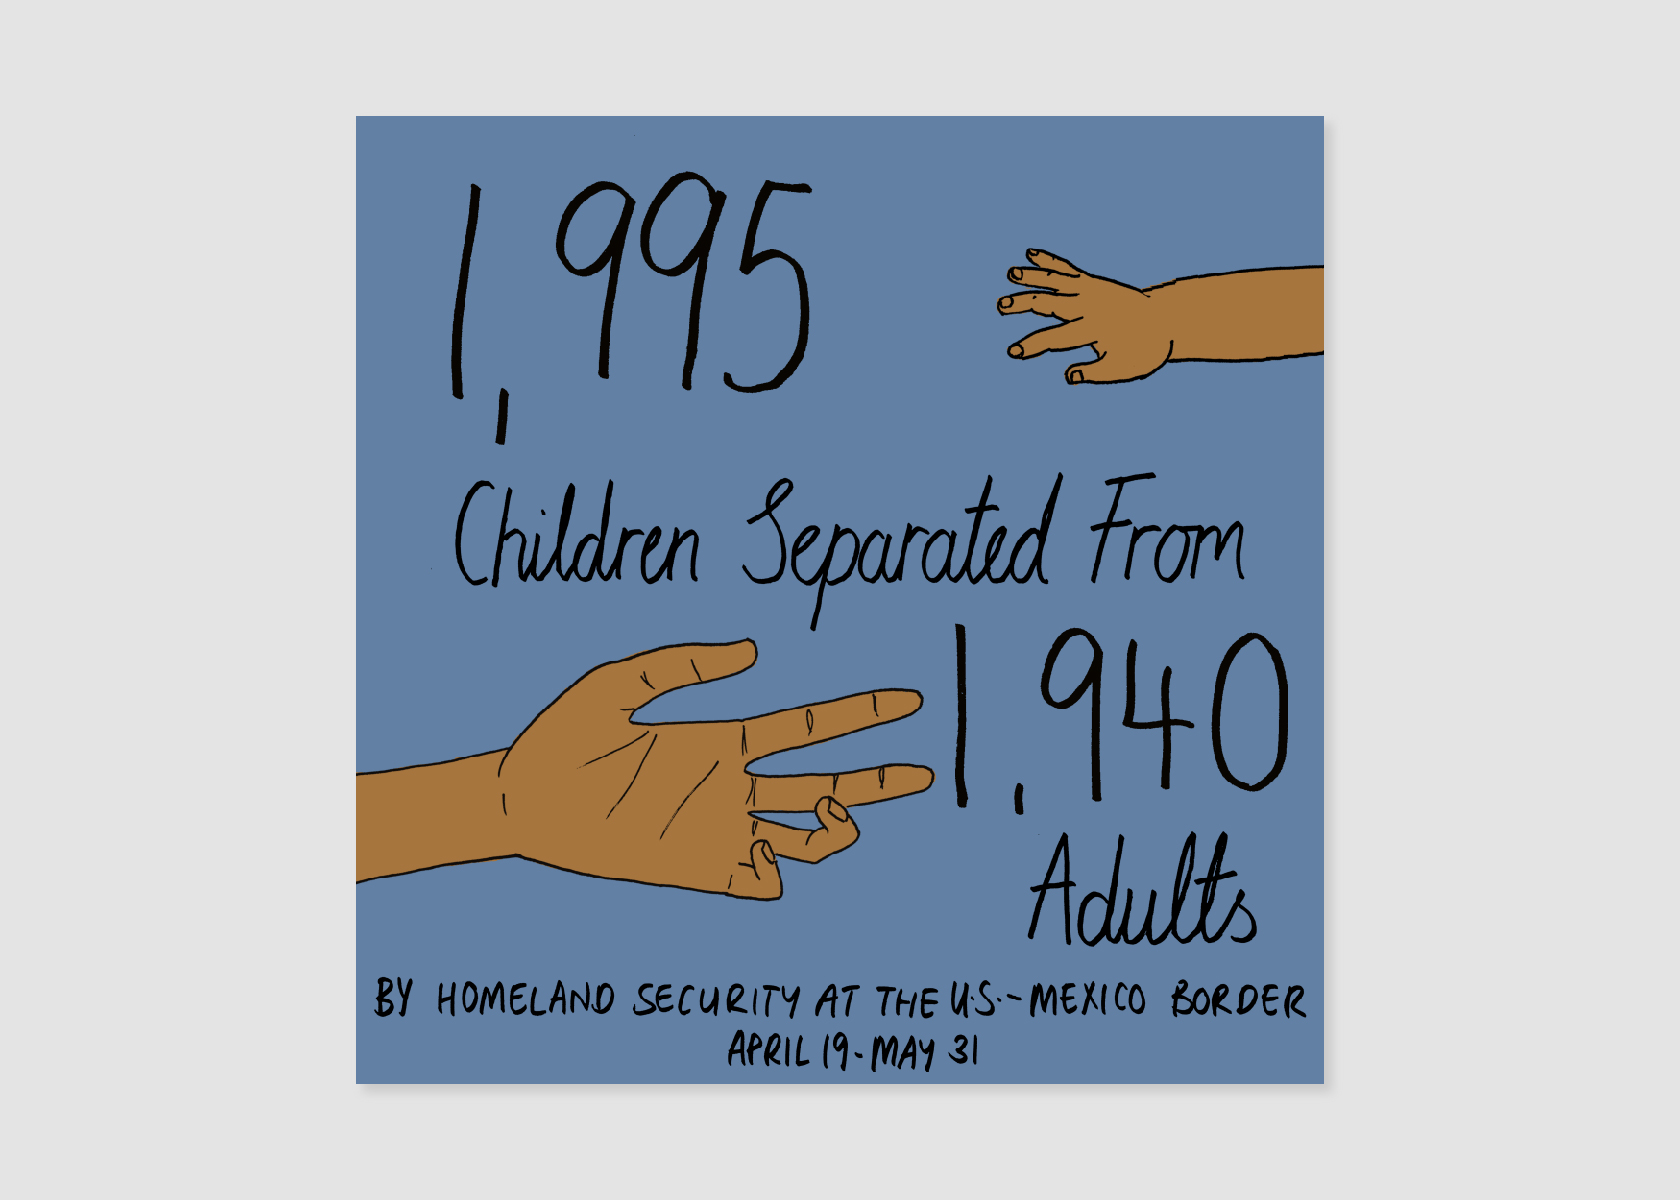 This personal piece by Mona Chalabi shows that 1,995 children were separated from their parents in the spring of 2018.